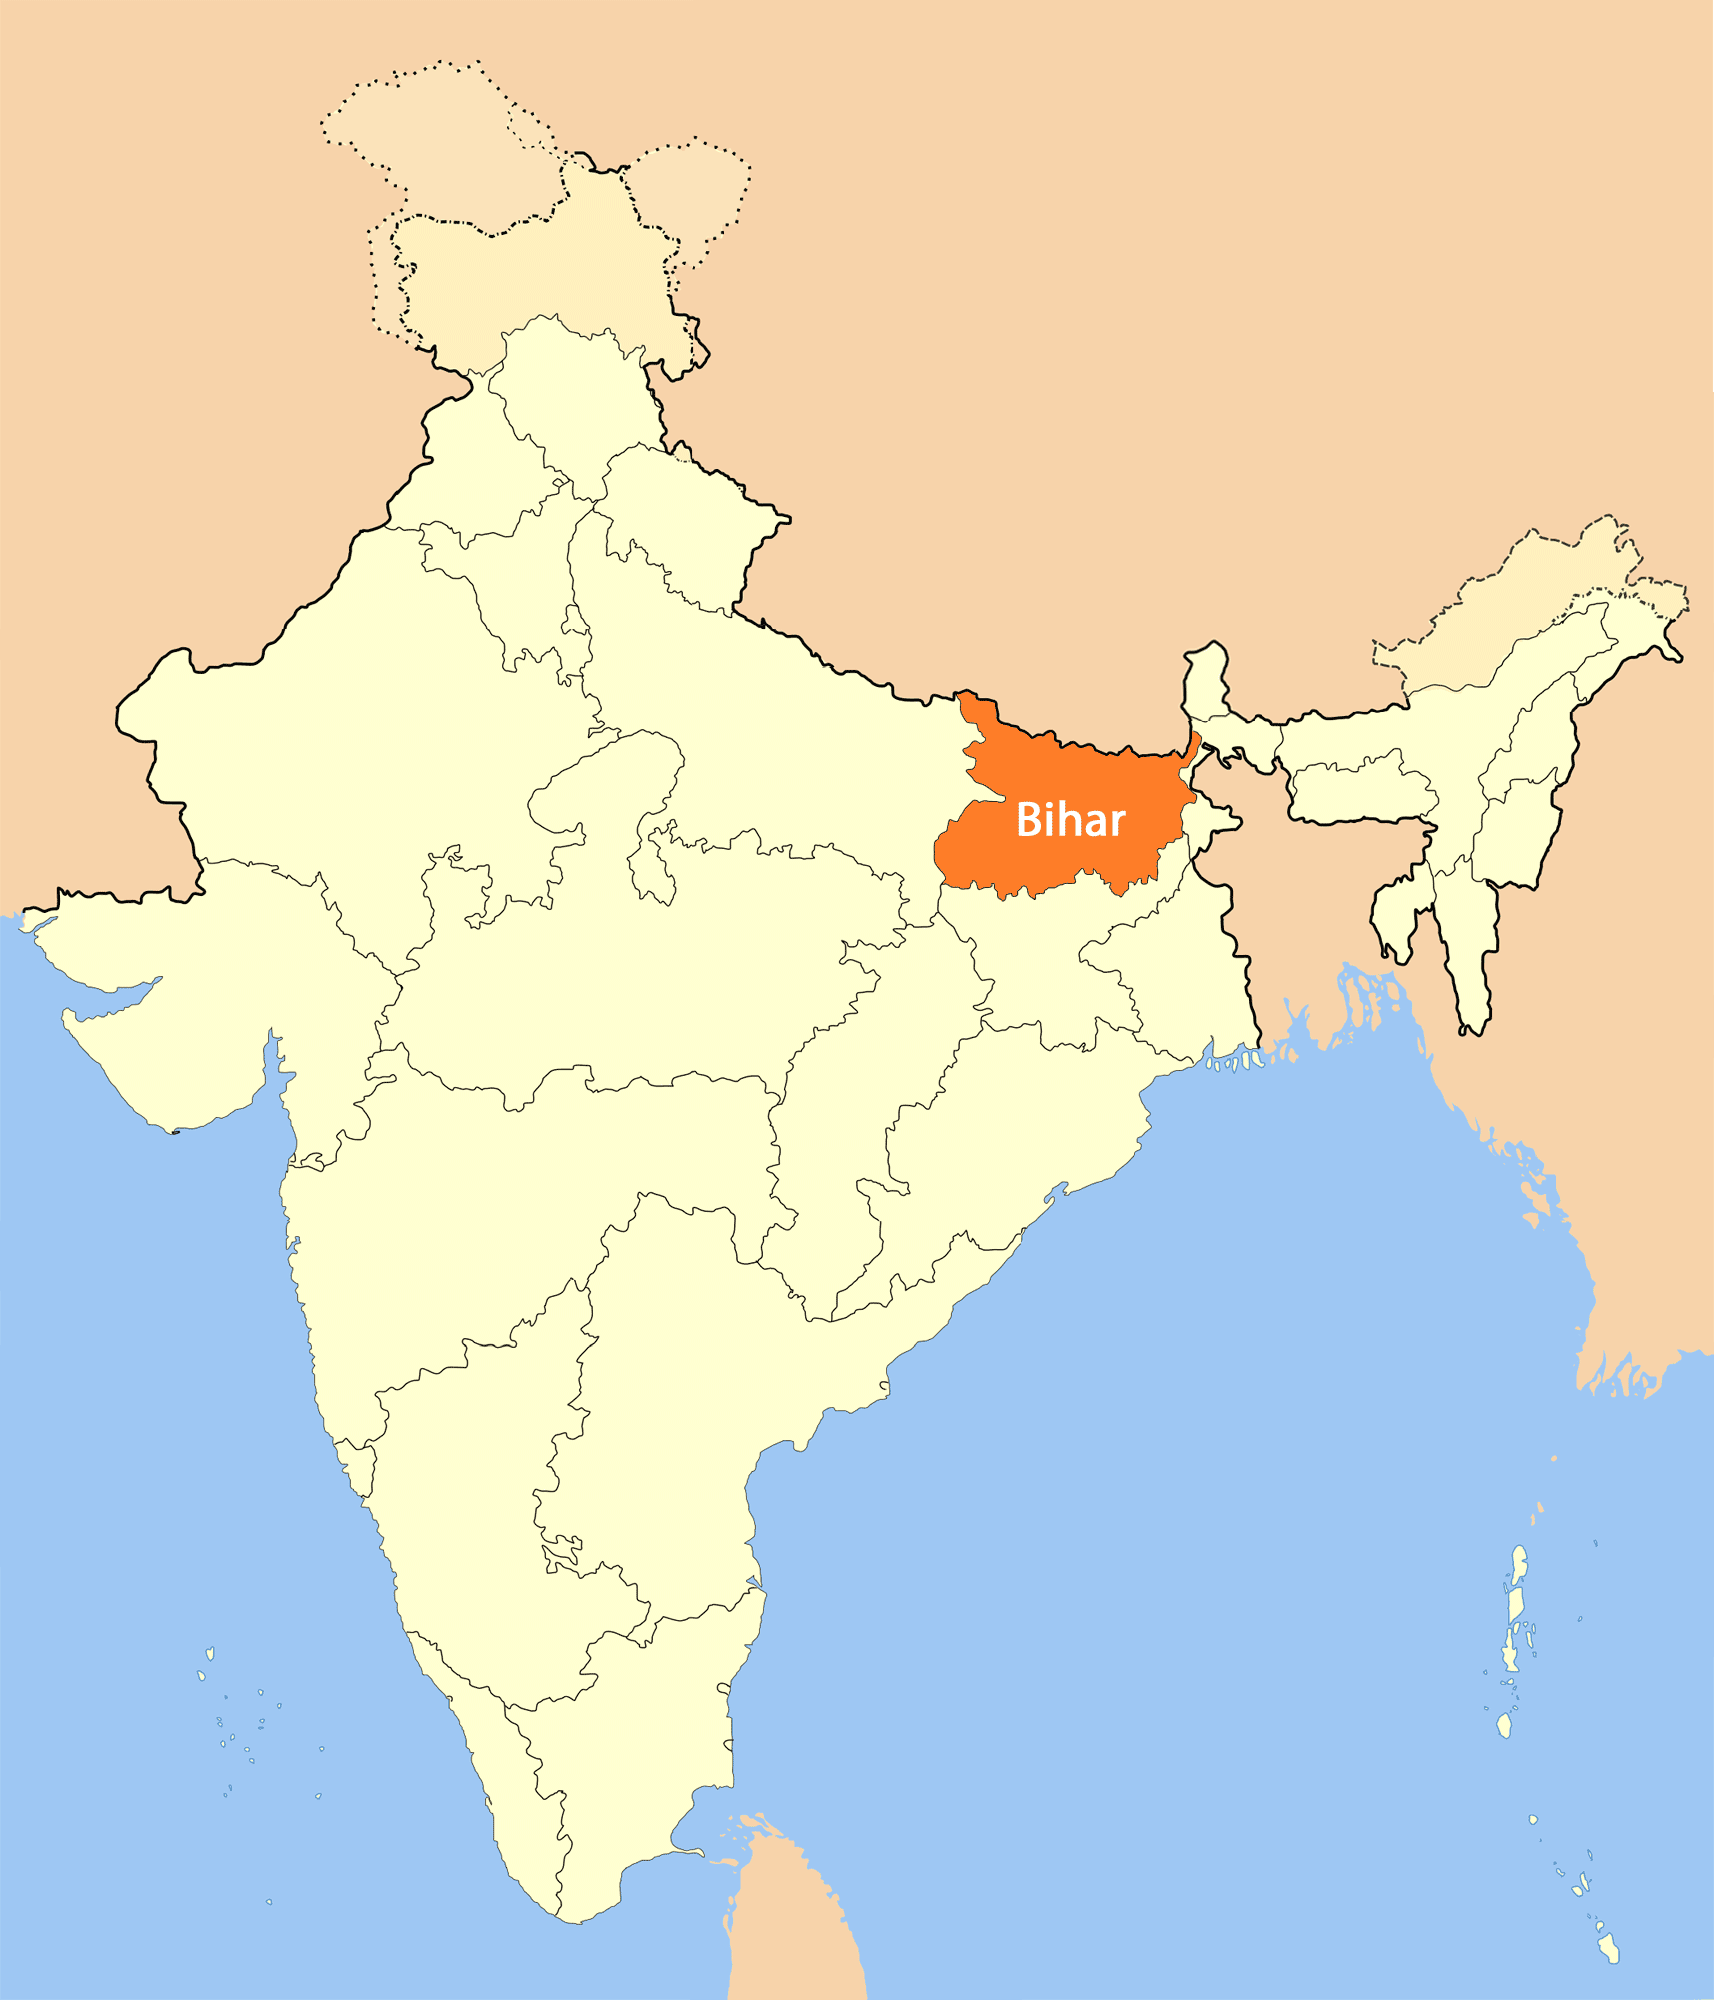 Location Map of Bihar